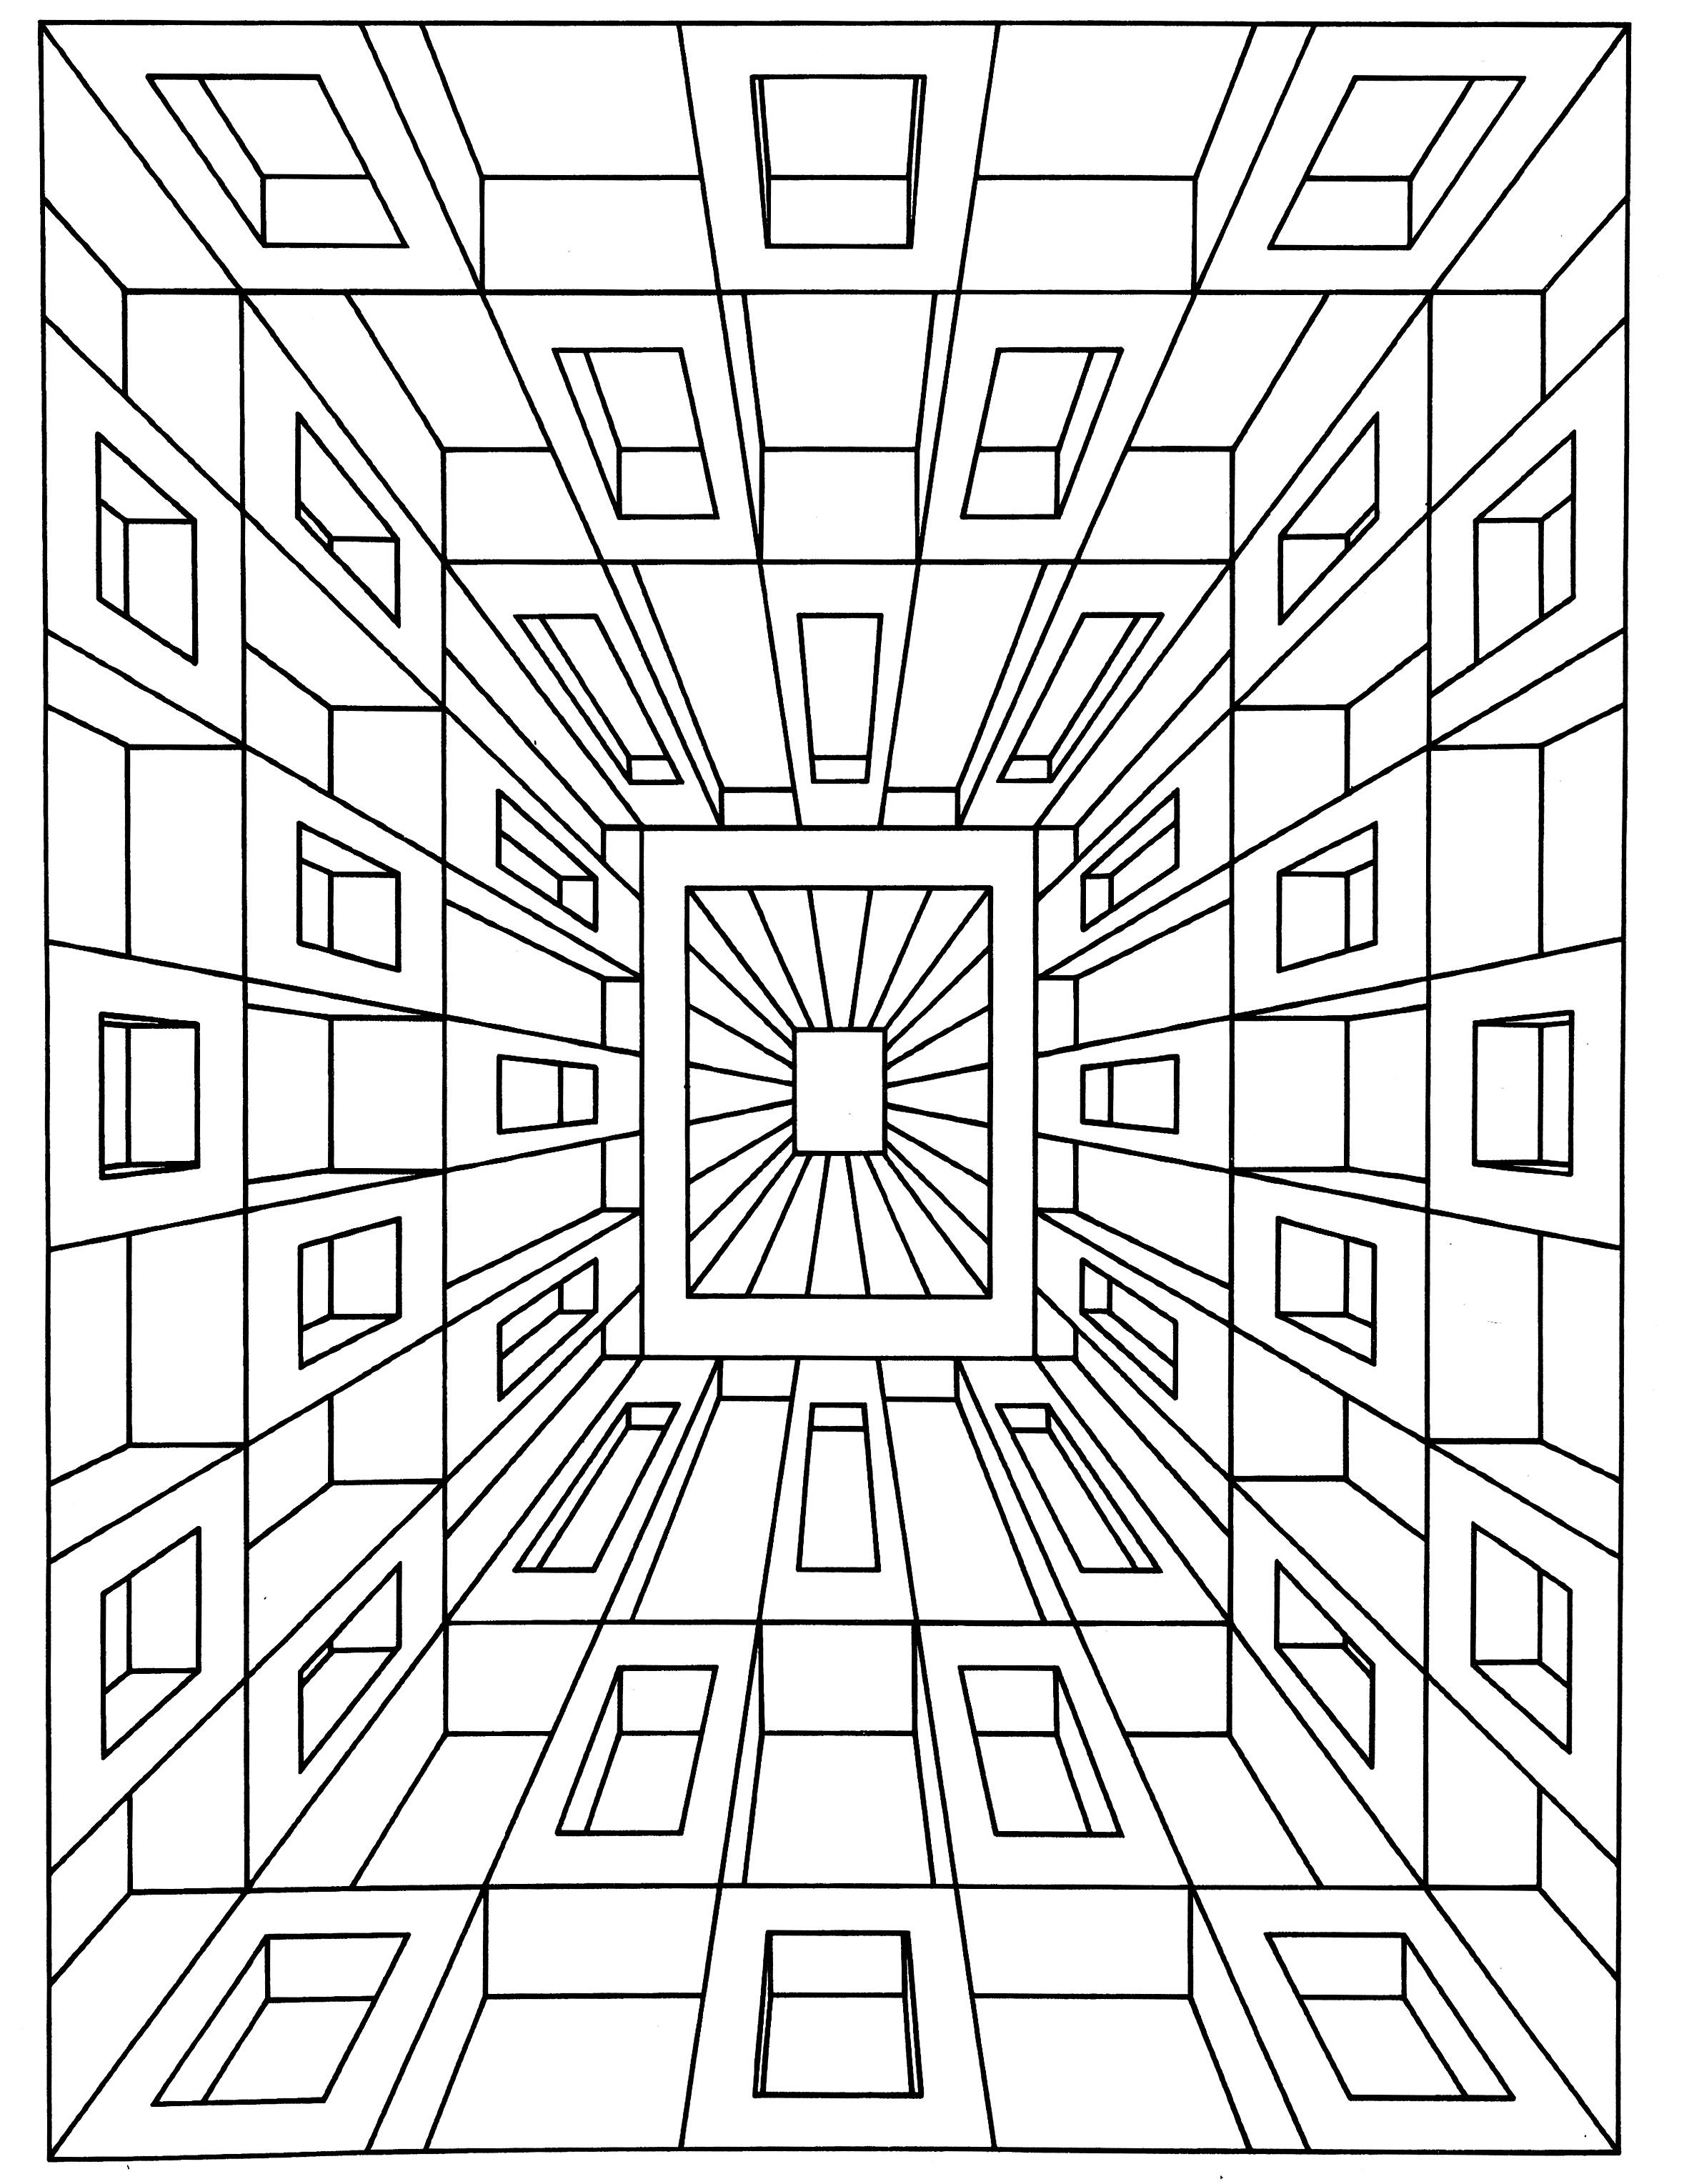 tessellation colouring pages tessellation coloring pages free printable to print free tessellation colouring pages